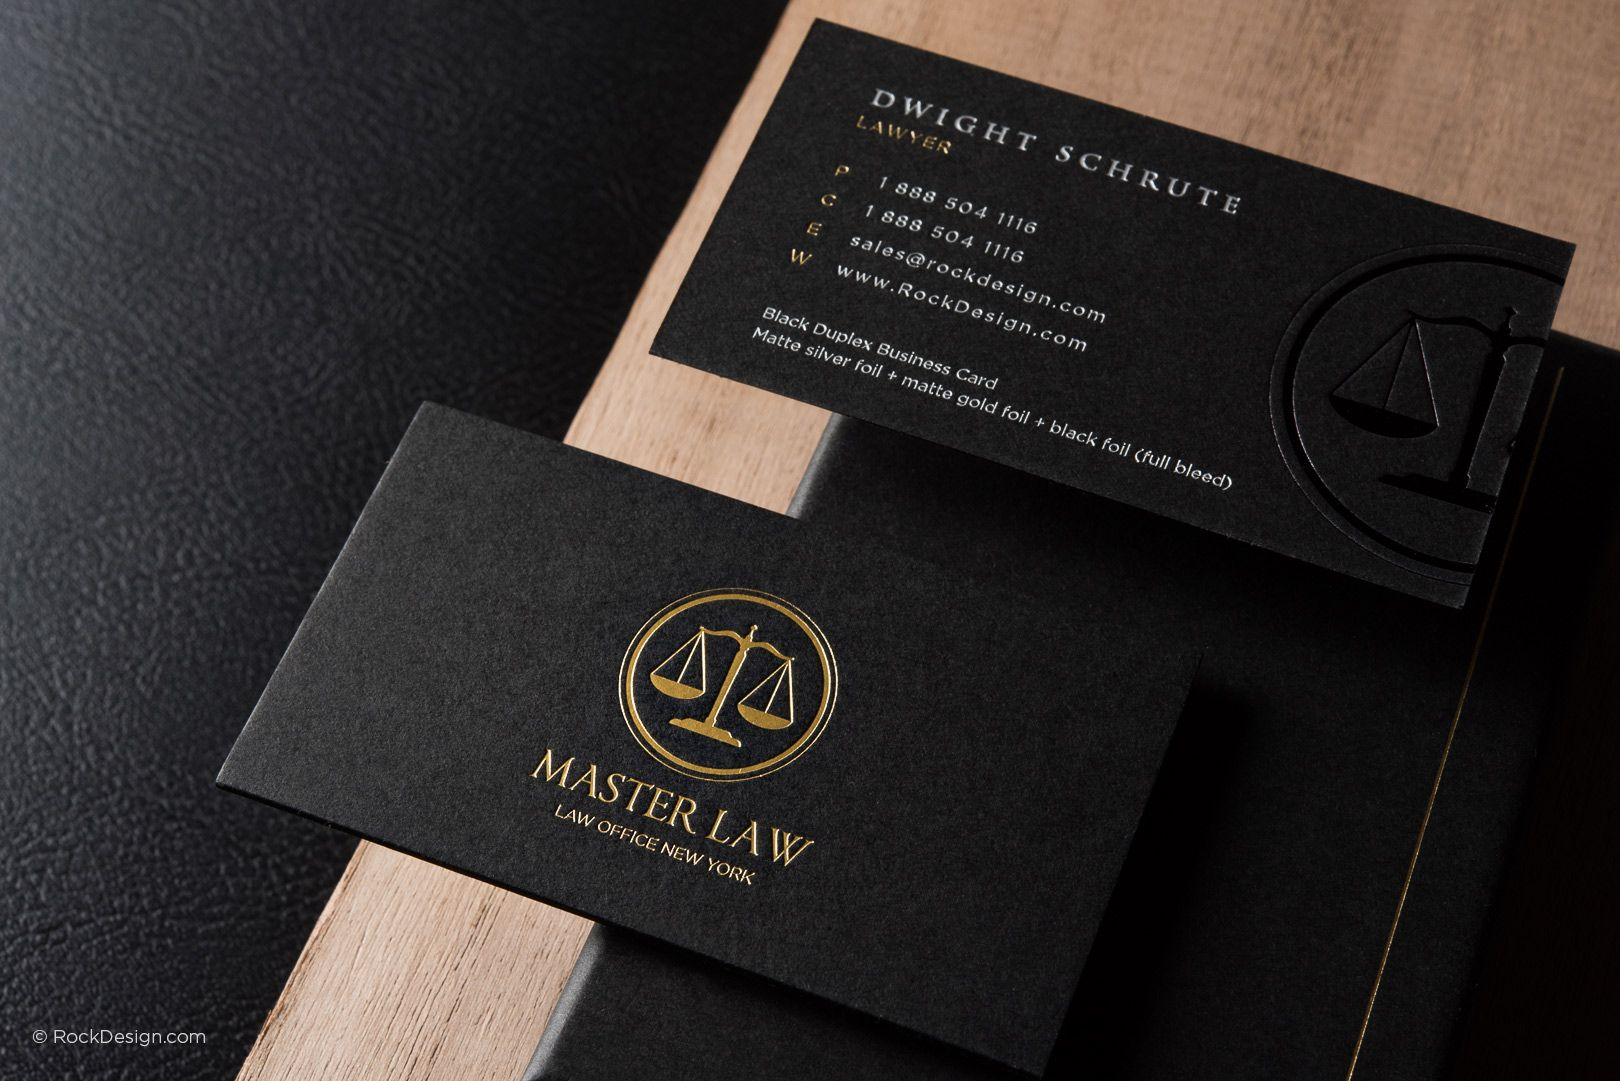 Classic modern black duplex attorney business card template master classic modern black duplex attorney business card template master law rockdesign luxury business card printing cheaphphosting Images